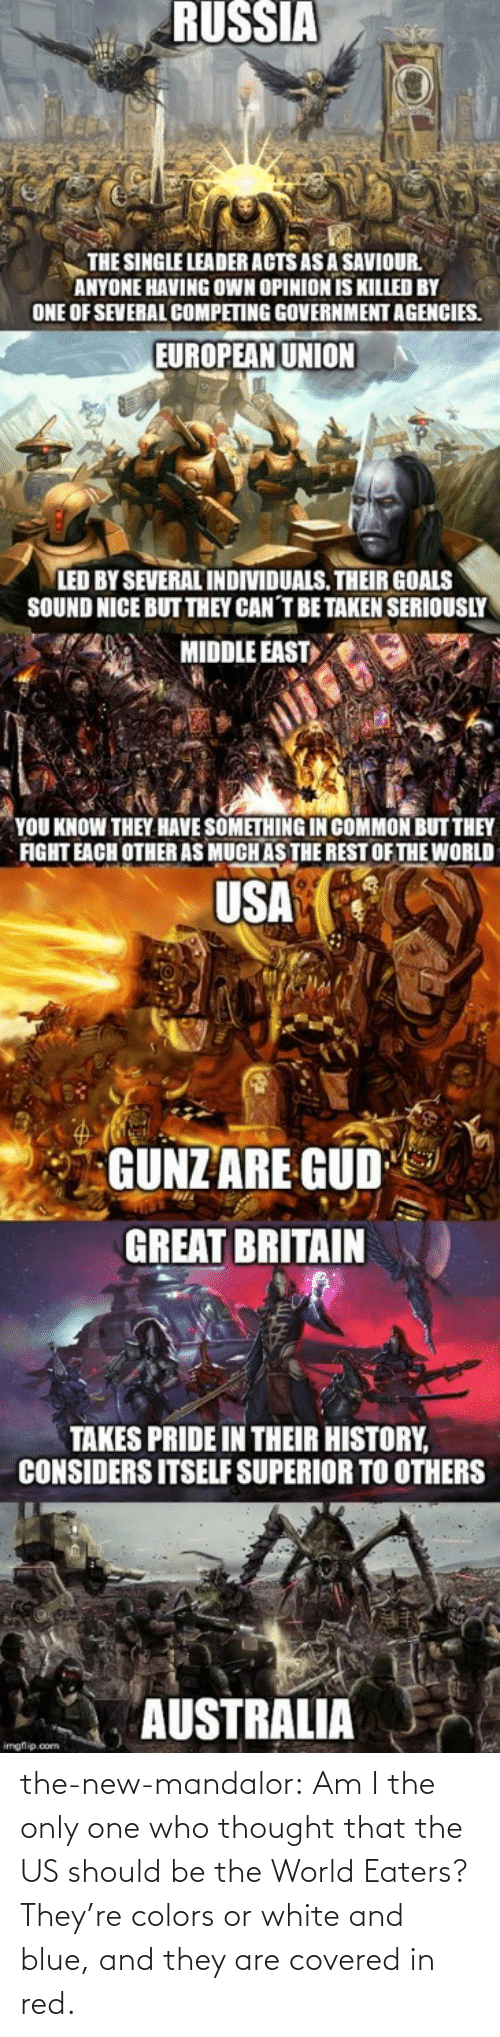 Am I the Only One: the-new-mandalor:  Am I the only one who thought that the US should be the World Eaters? They're colors or white and blue, and they are covered in red.